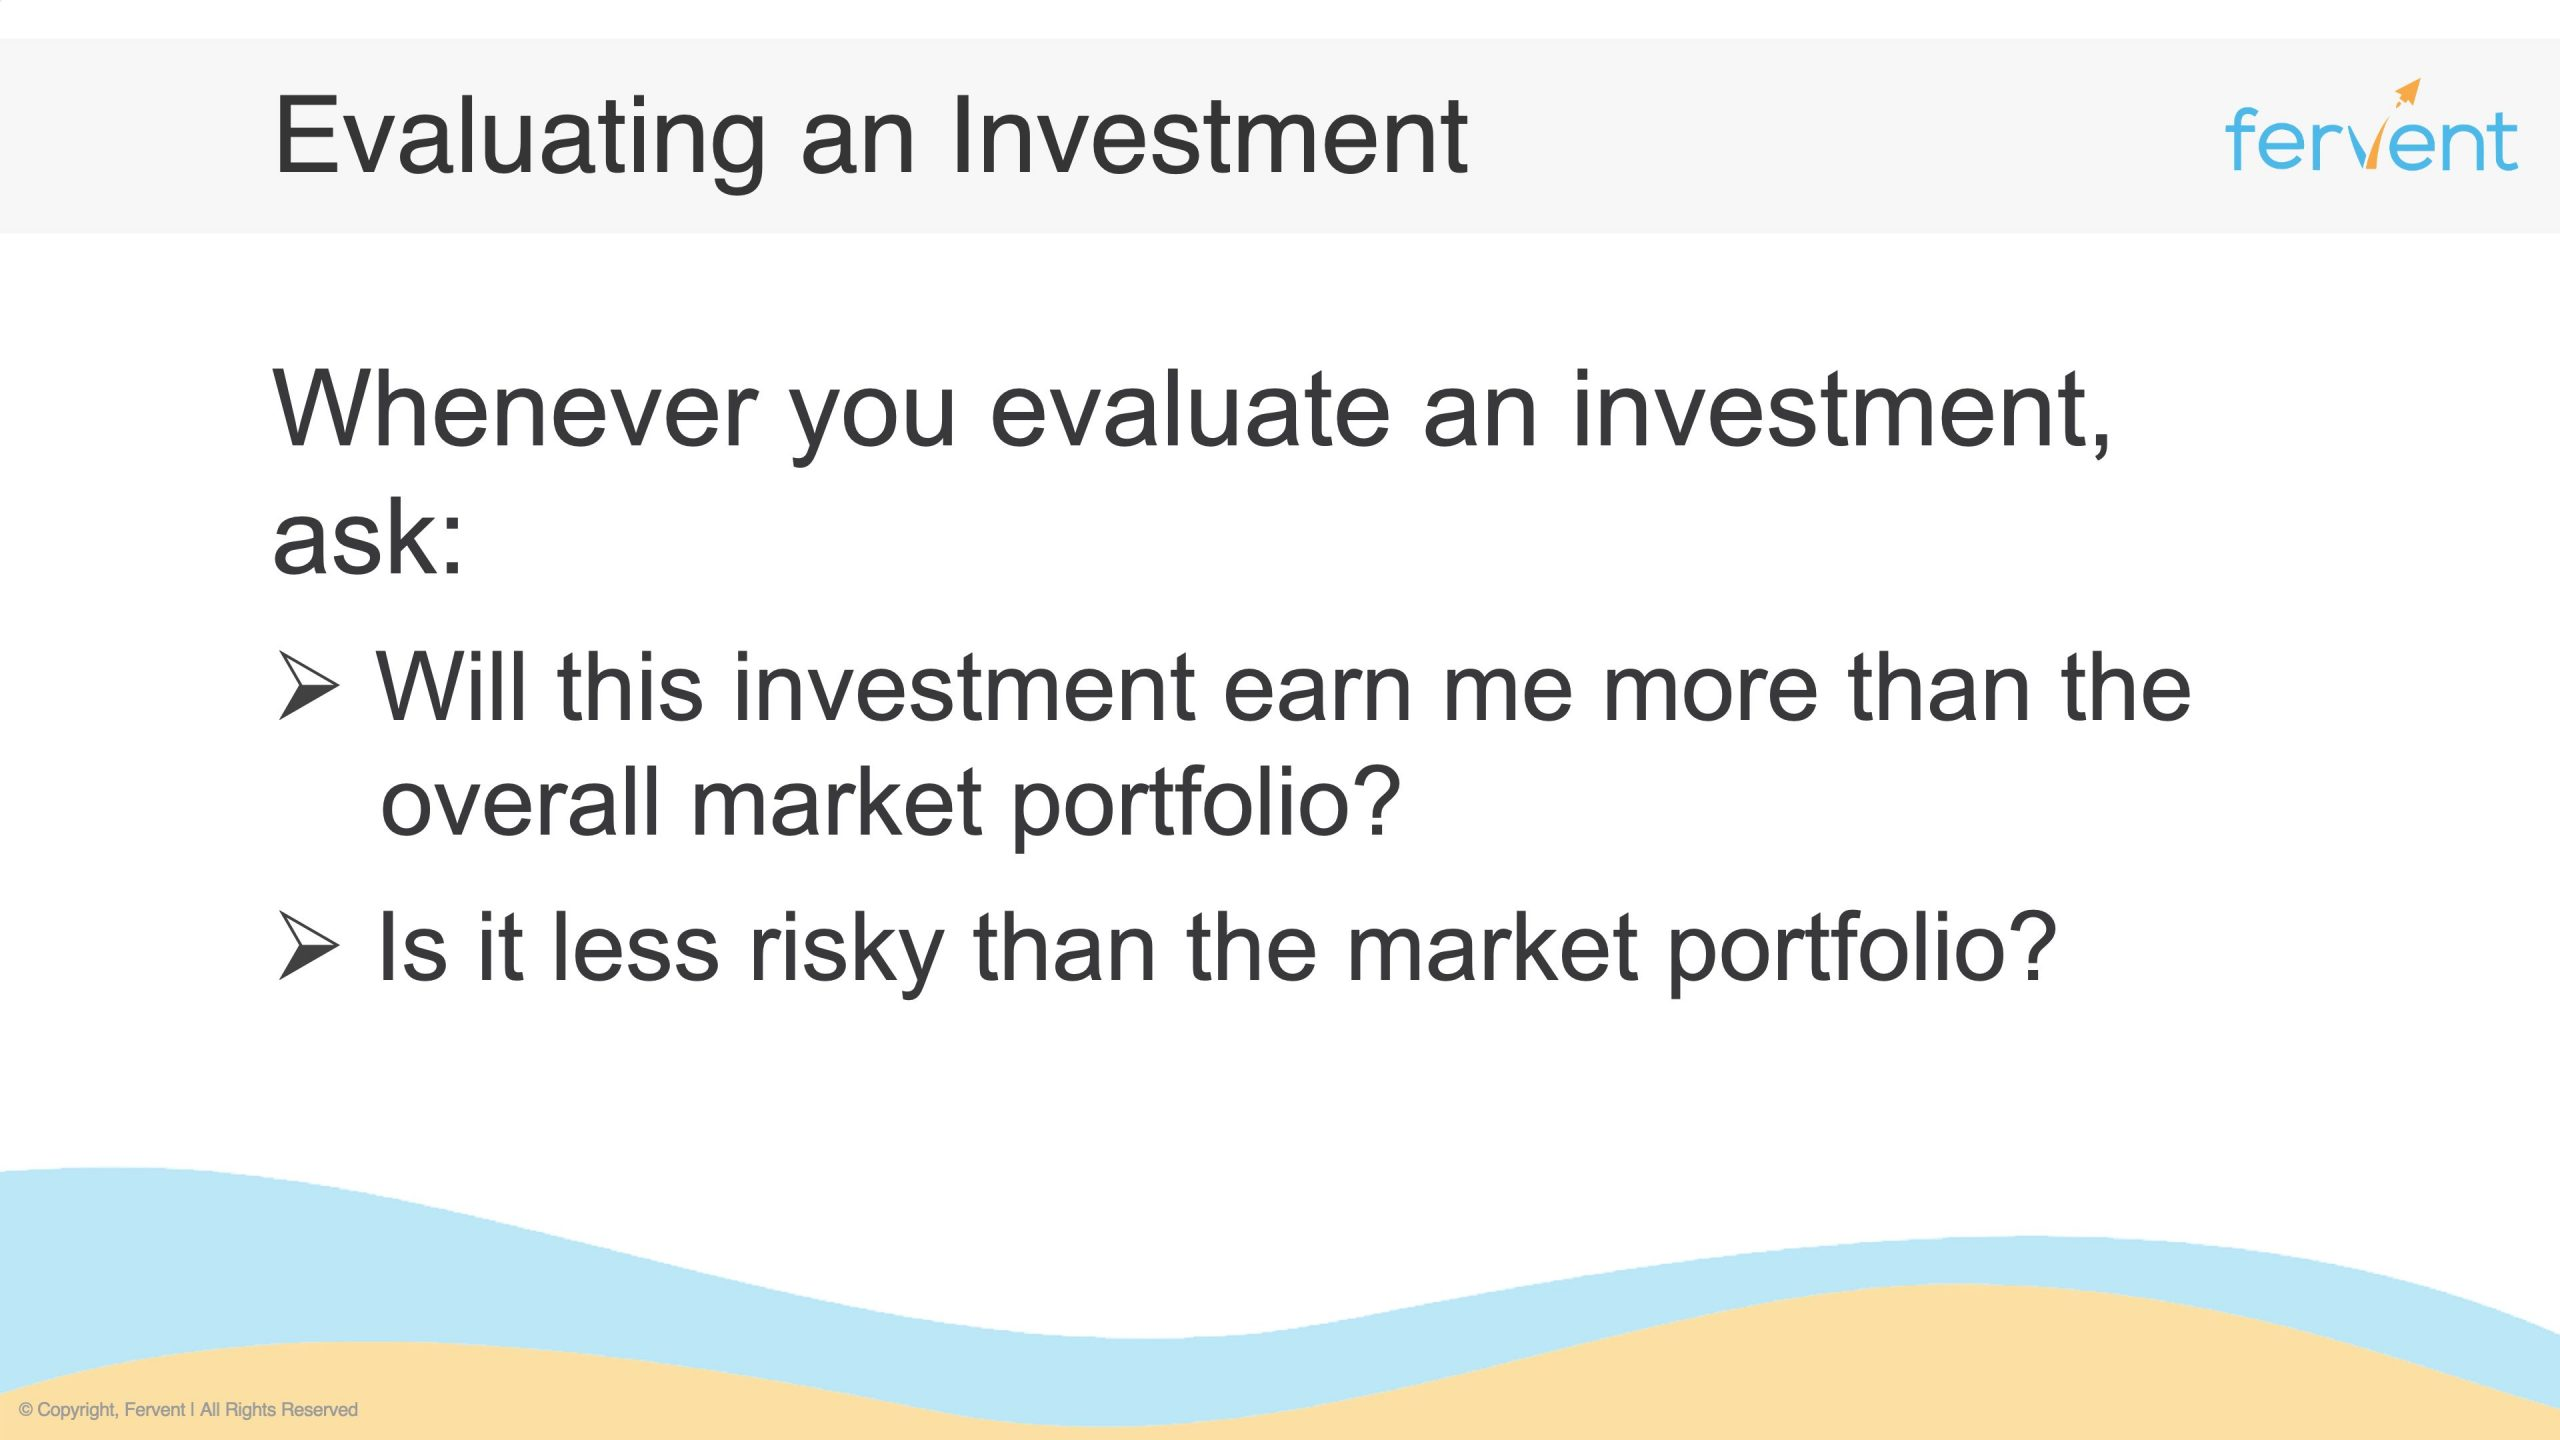 Slide showcasing the main questions to ask when evaluating a stock or investment